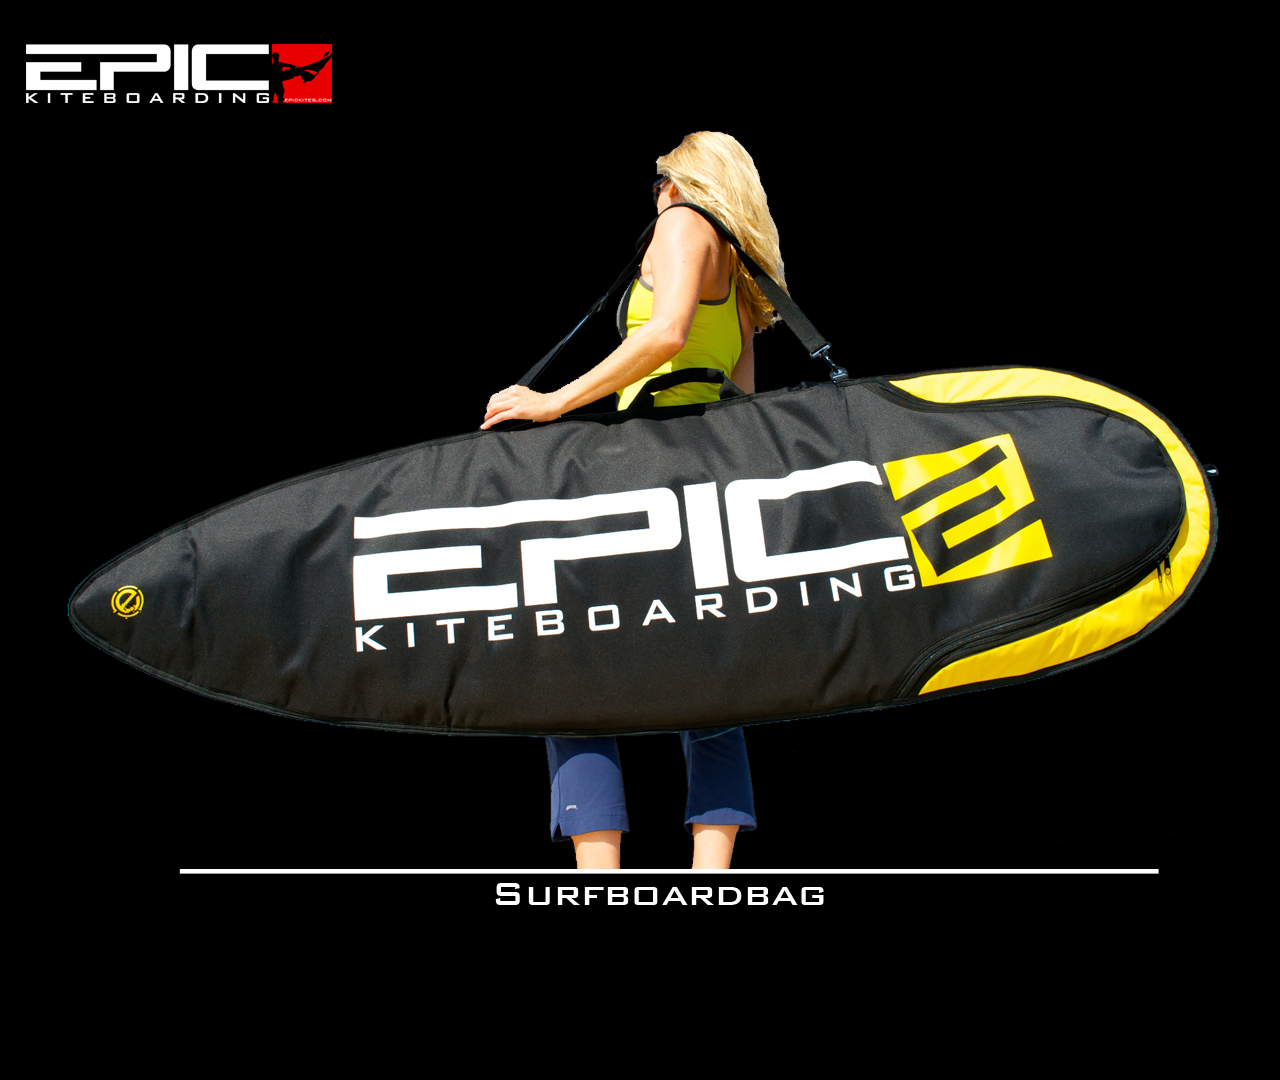 promotionSurfboardbag.jpg